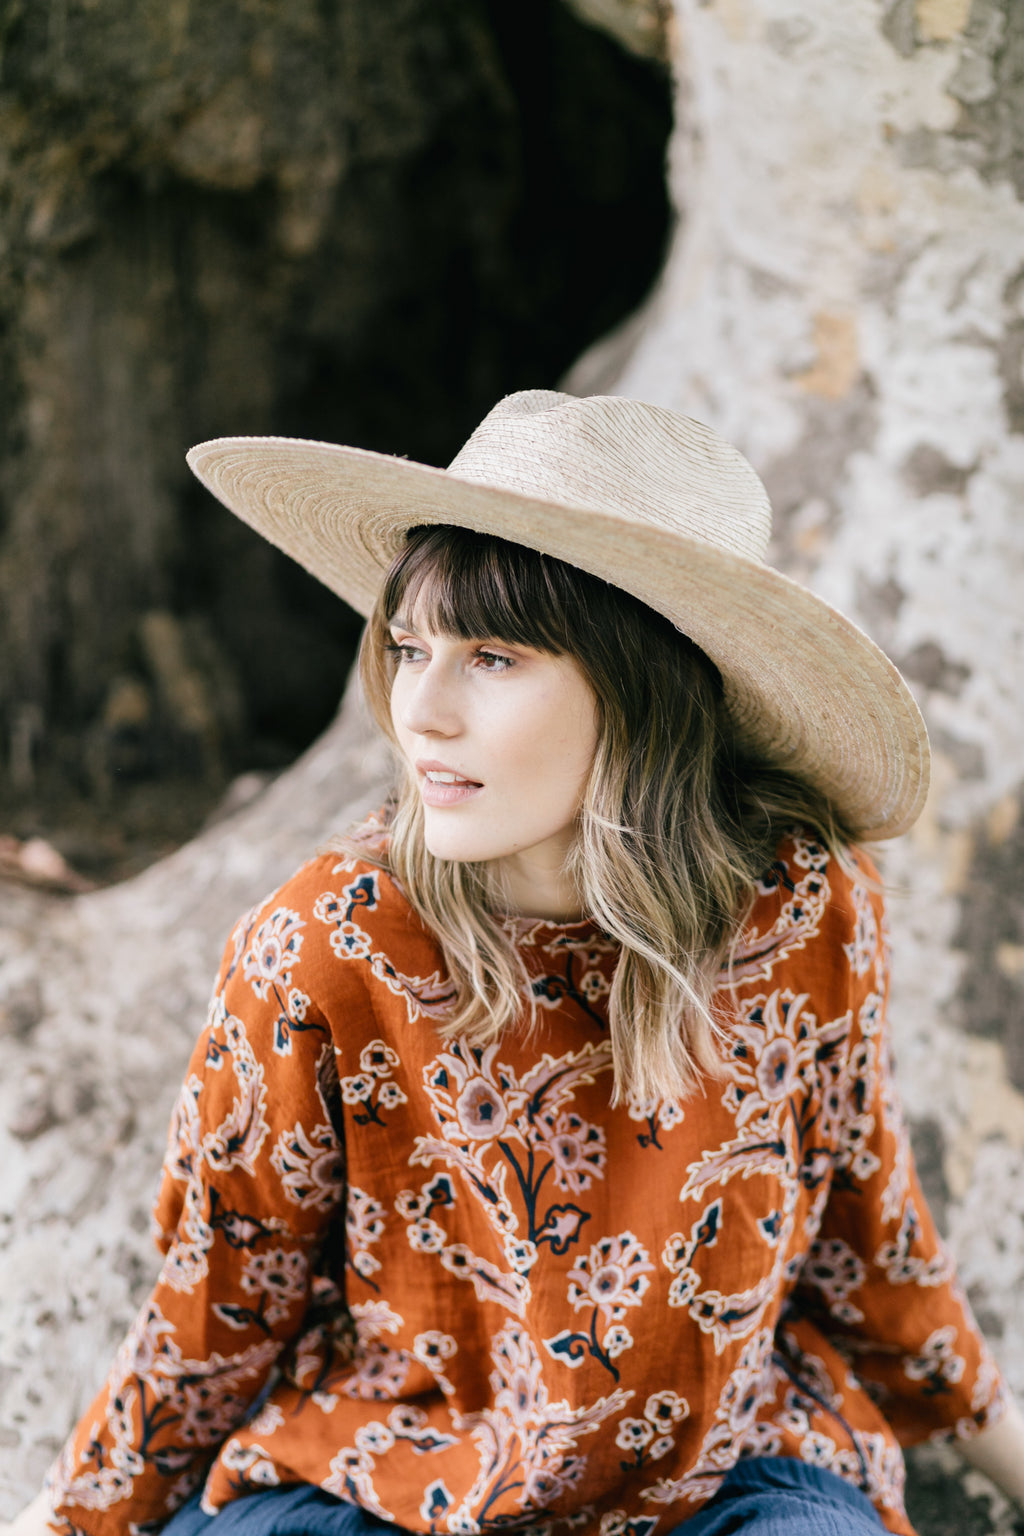 Model wearing an umber orange floral print top with a high low hem and cotton rolled sleeves paired with a wide brim straw hat.